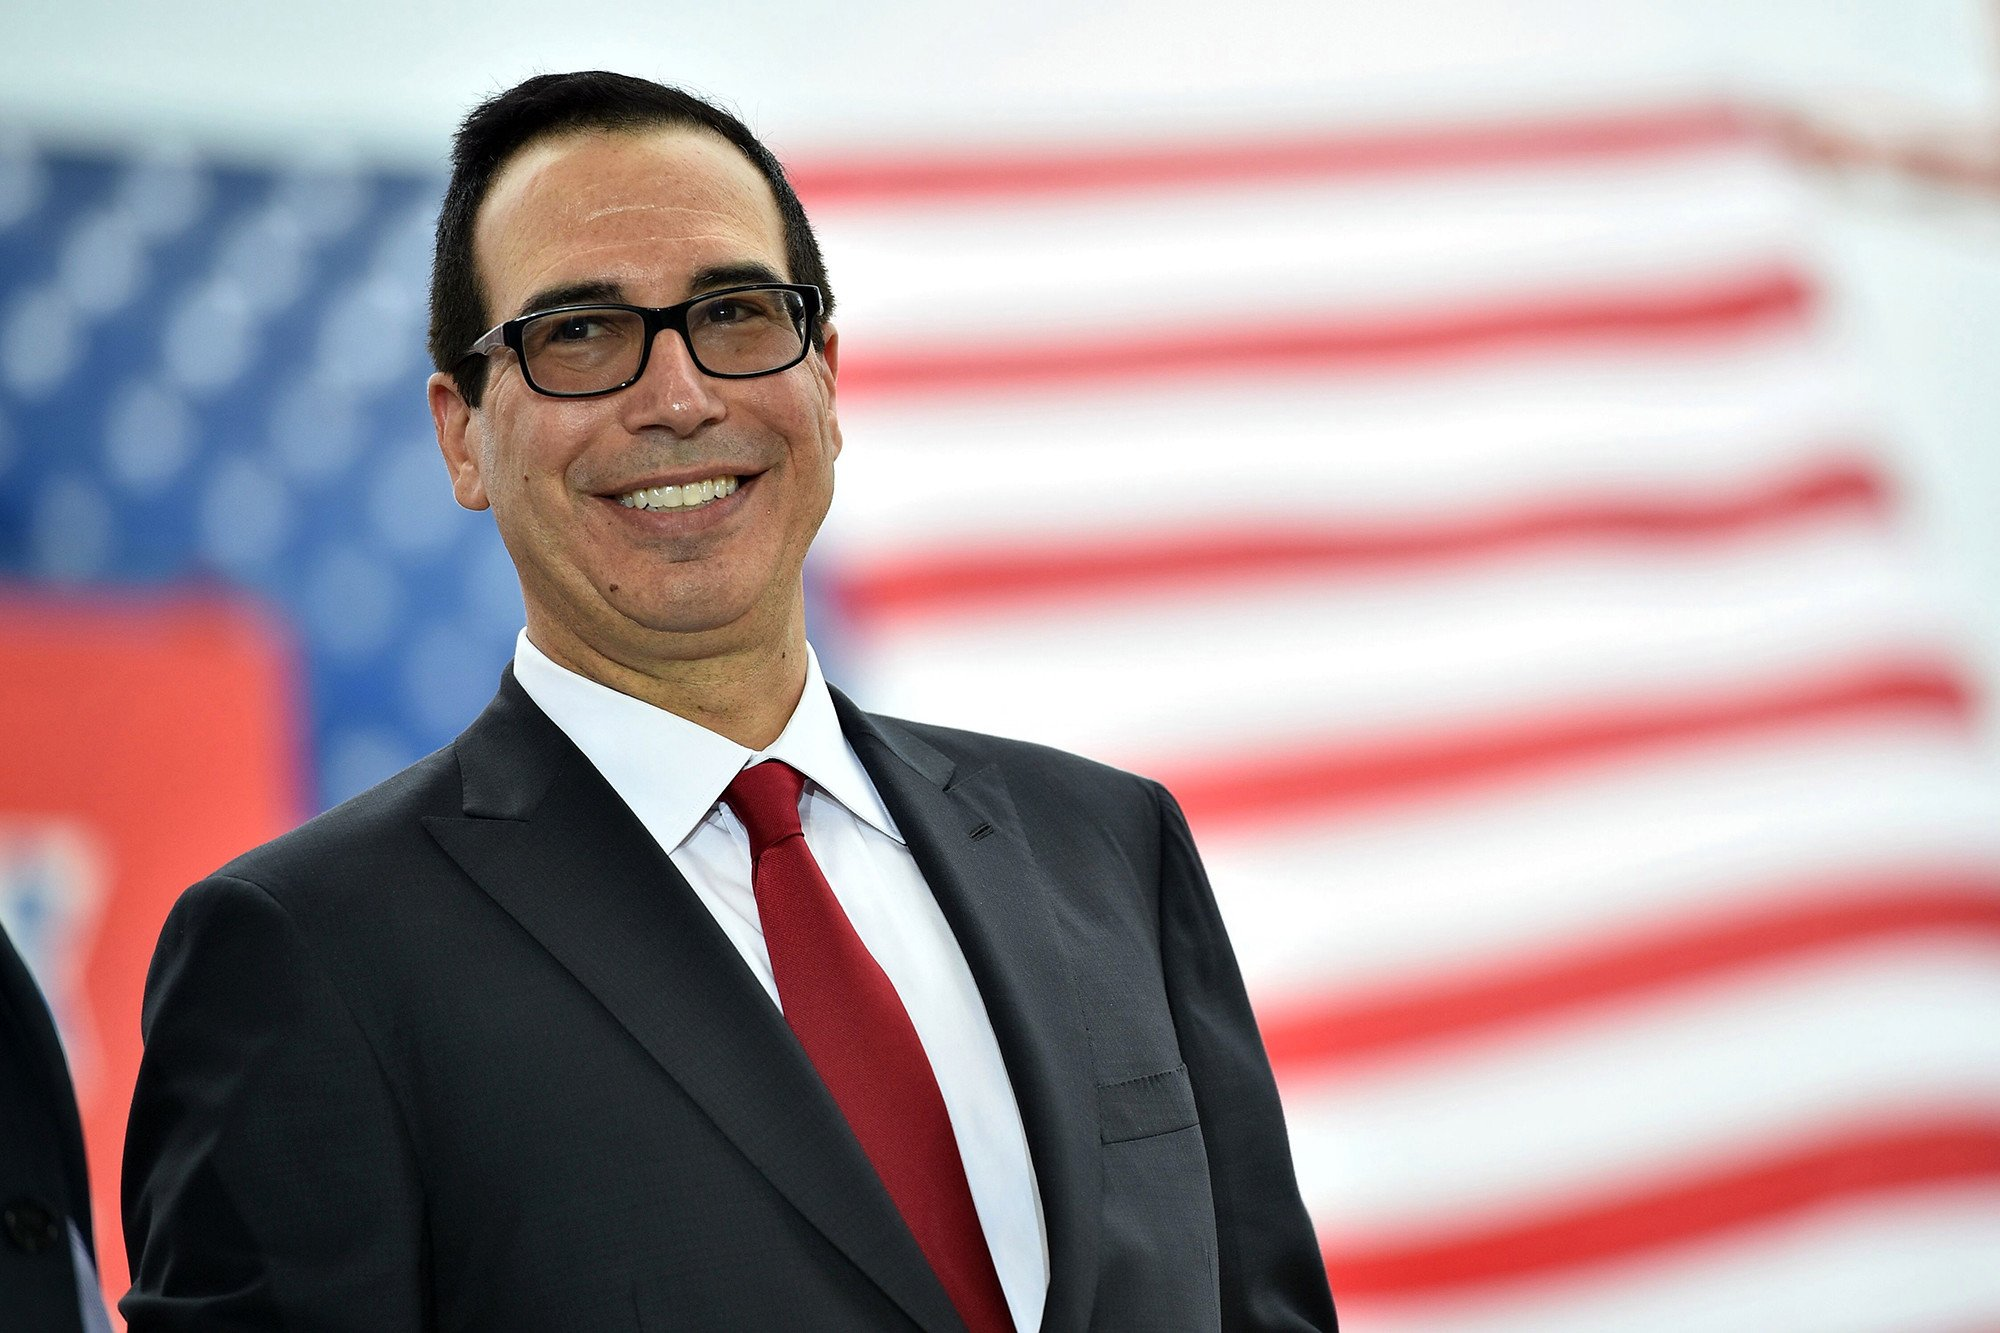 Does Steve Mnuchin really know this little about inflation?